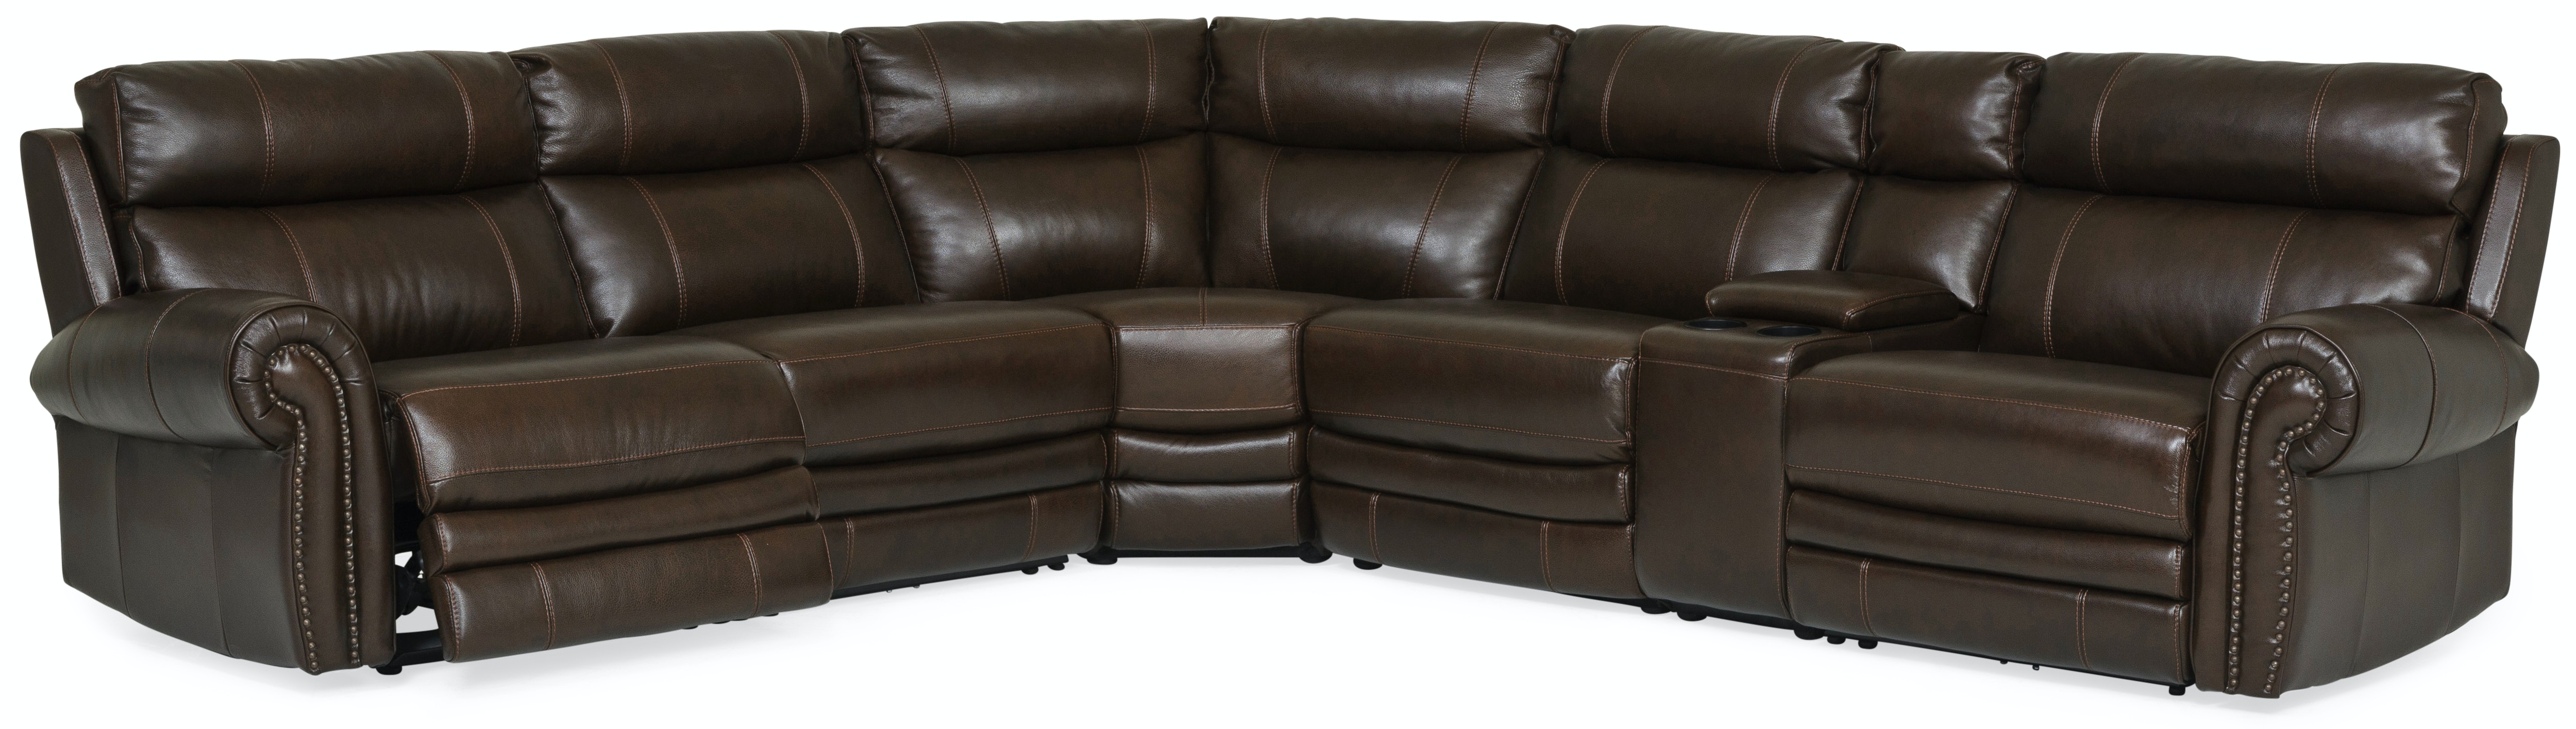 Bentley 6 Piece Power Reclining Leather Sectional GP:M165